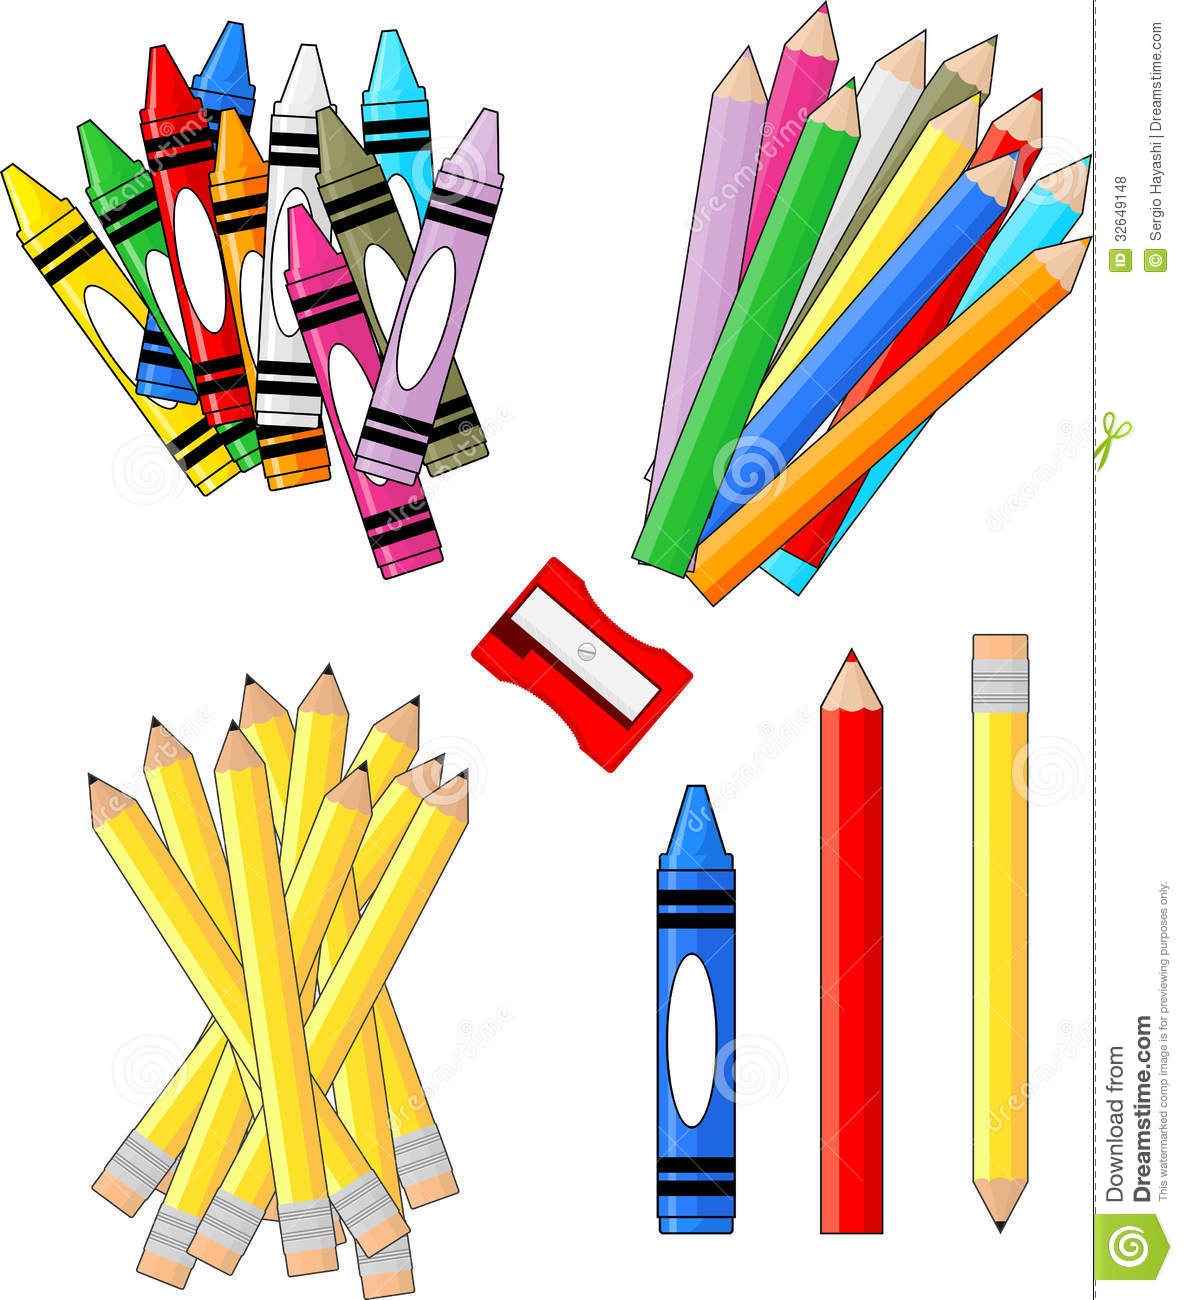 school supplies clipart free clipart panda free clipart images of school supplies clipart pictures of school supplies